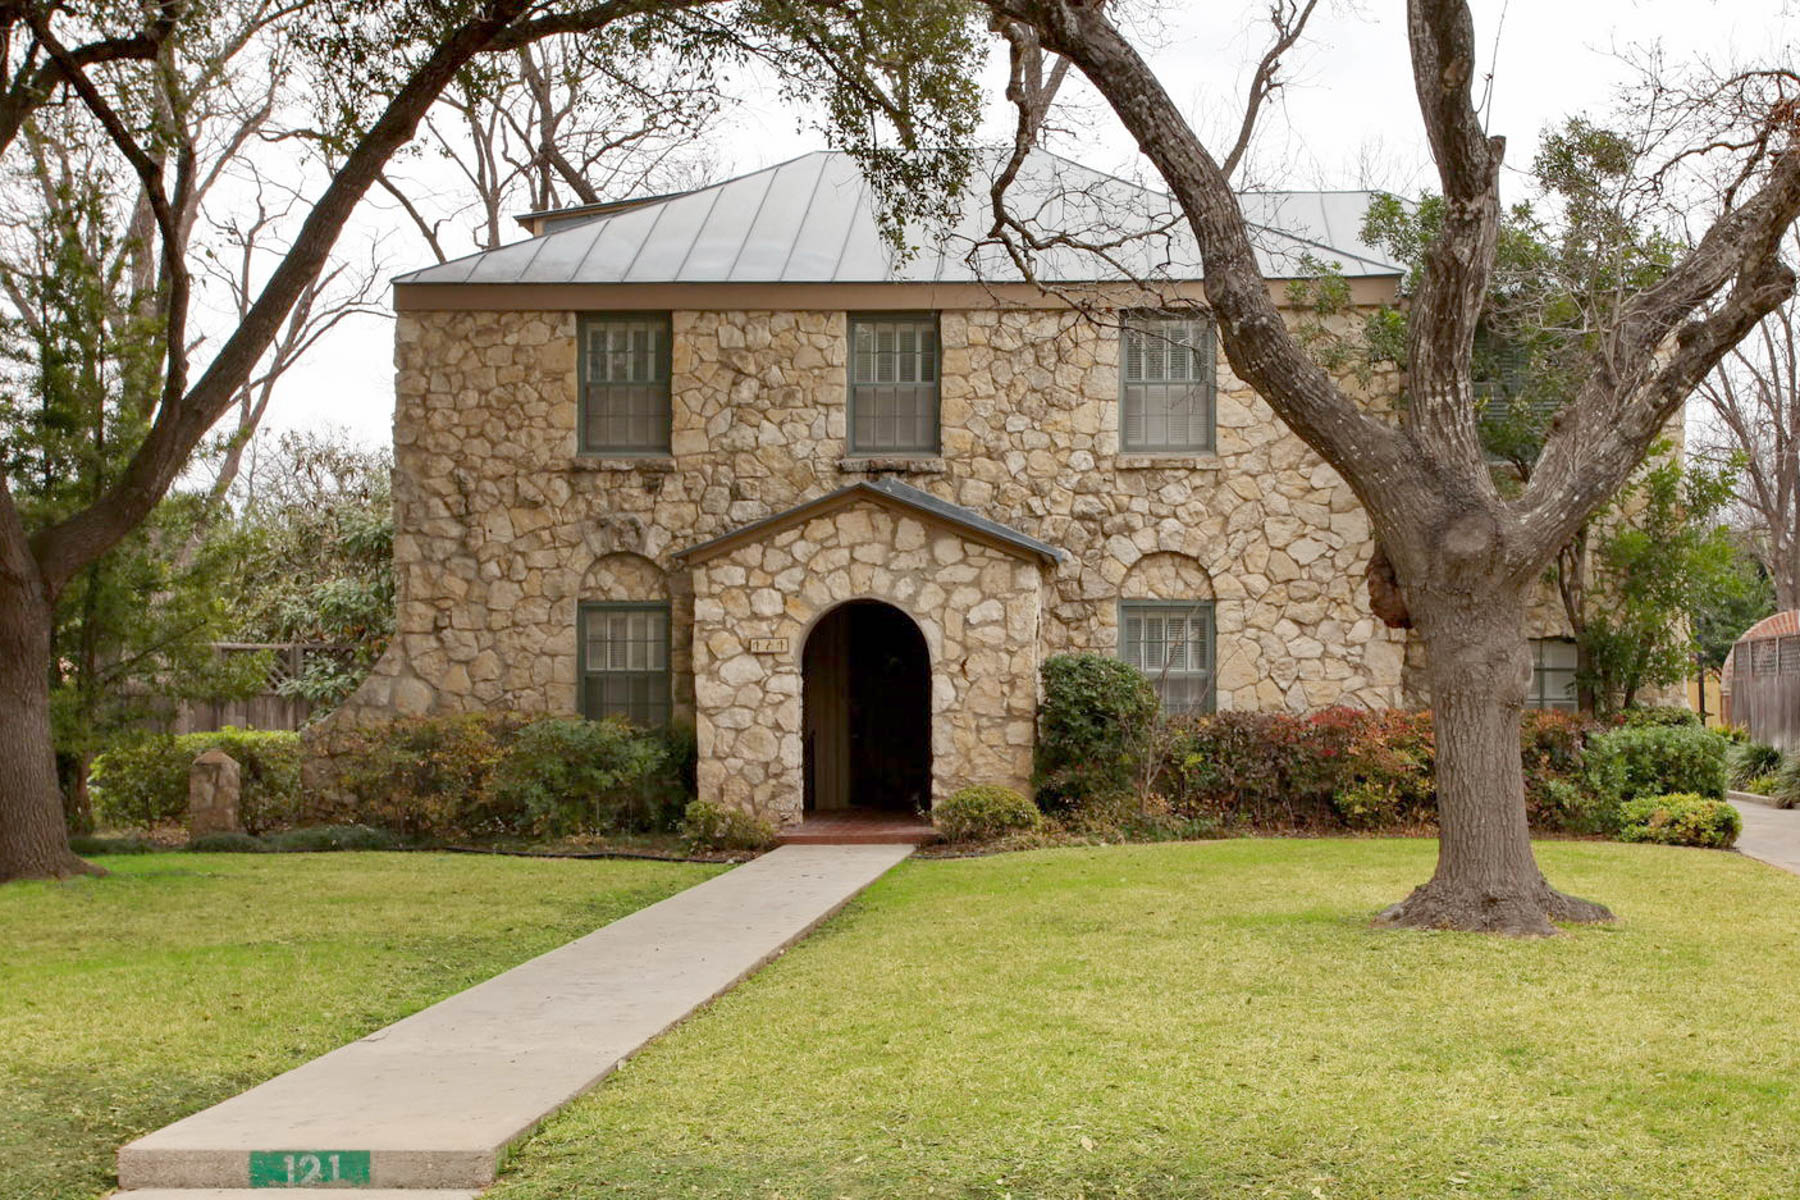 Single Family Home for Sale at Charming Olmos Park Home 121 Primera Dr San Antonio, Texas 78212 United States